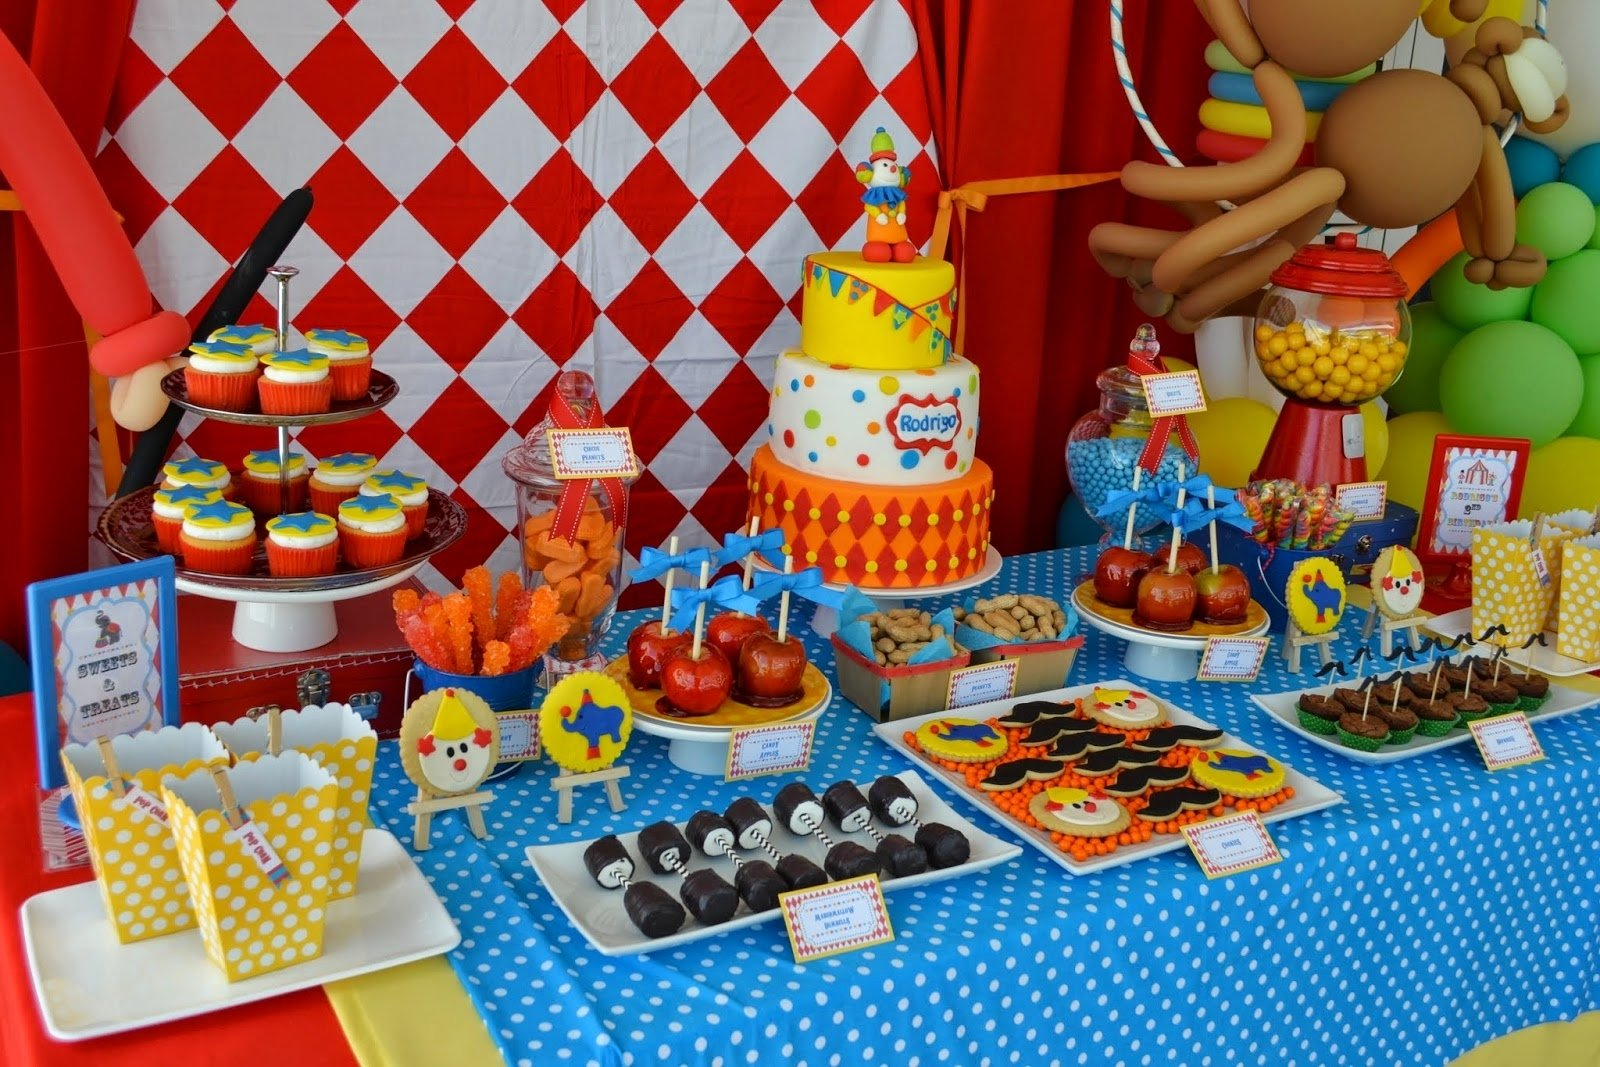 10 Lovable 4 Year Old Boy Birthday Party Ideas Themes 3